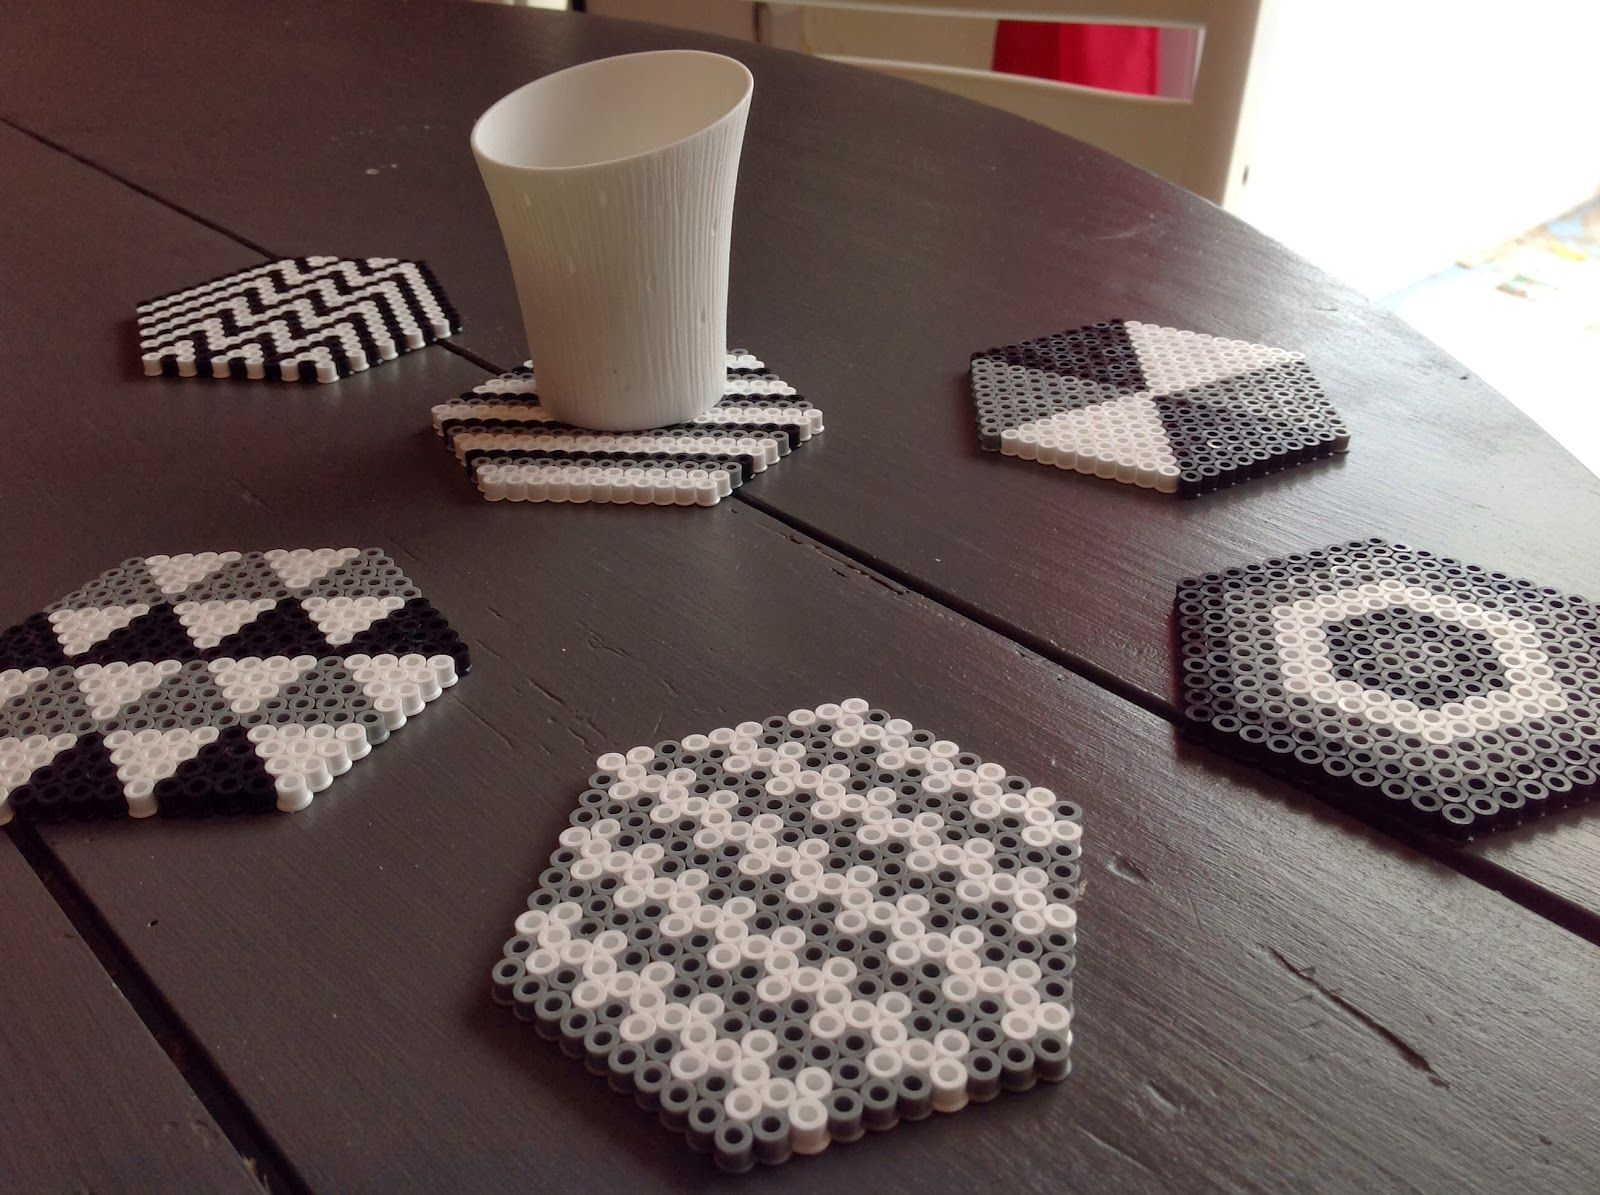 blog parenthese creative ln diy dessous de verre perles hama perler bead projects pinterest. Black Bedroom Furniture Sets. Home Design Ideas